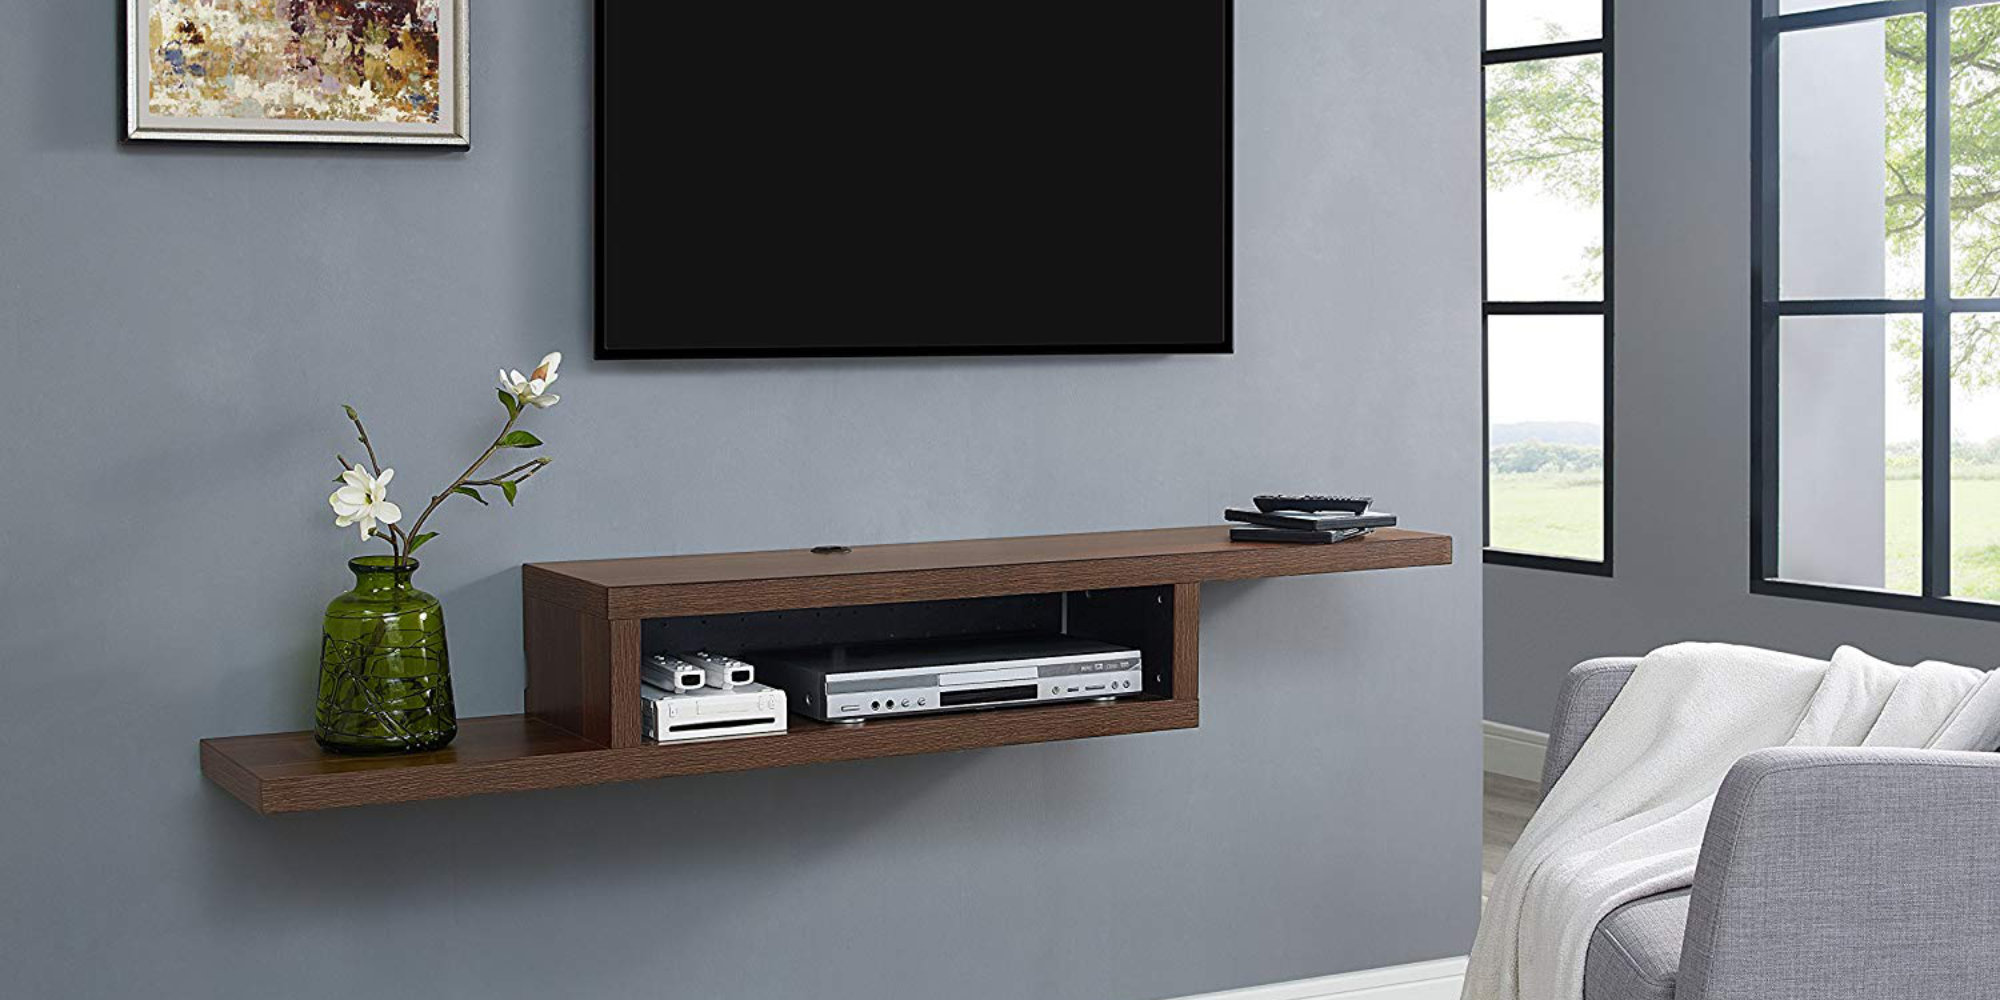 Asymmetrical Wall Mounted Tv Shelf Martin Furniture 60 In Entertainment Centers Tv Stands Home Garden Adelimahengineering Co Tz